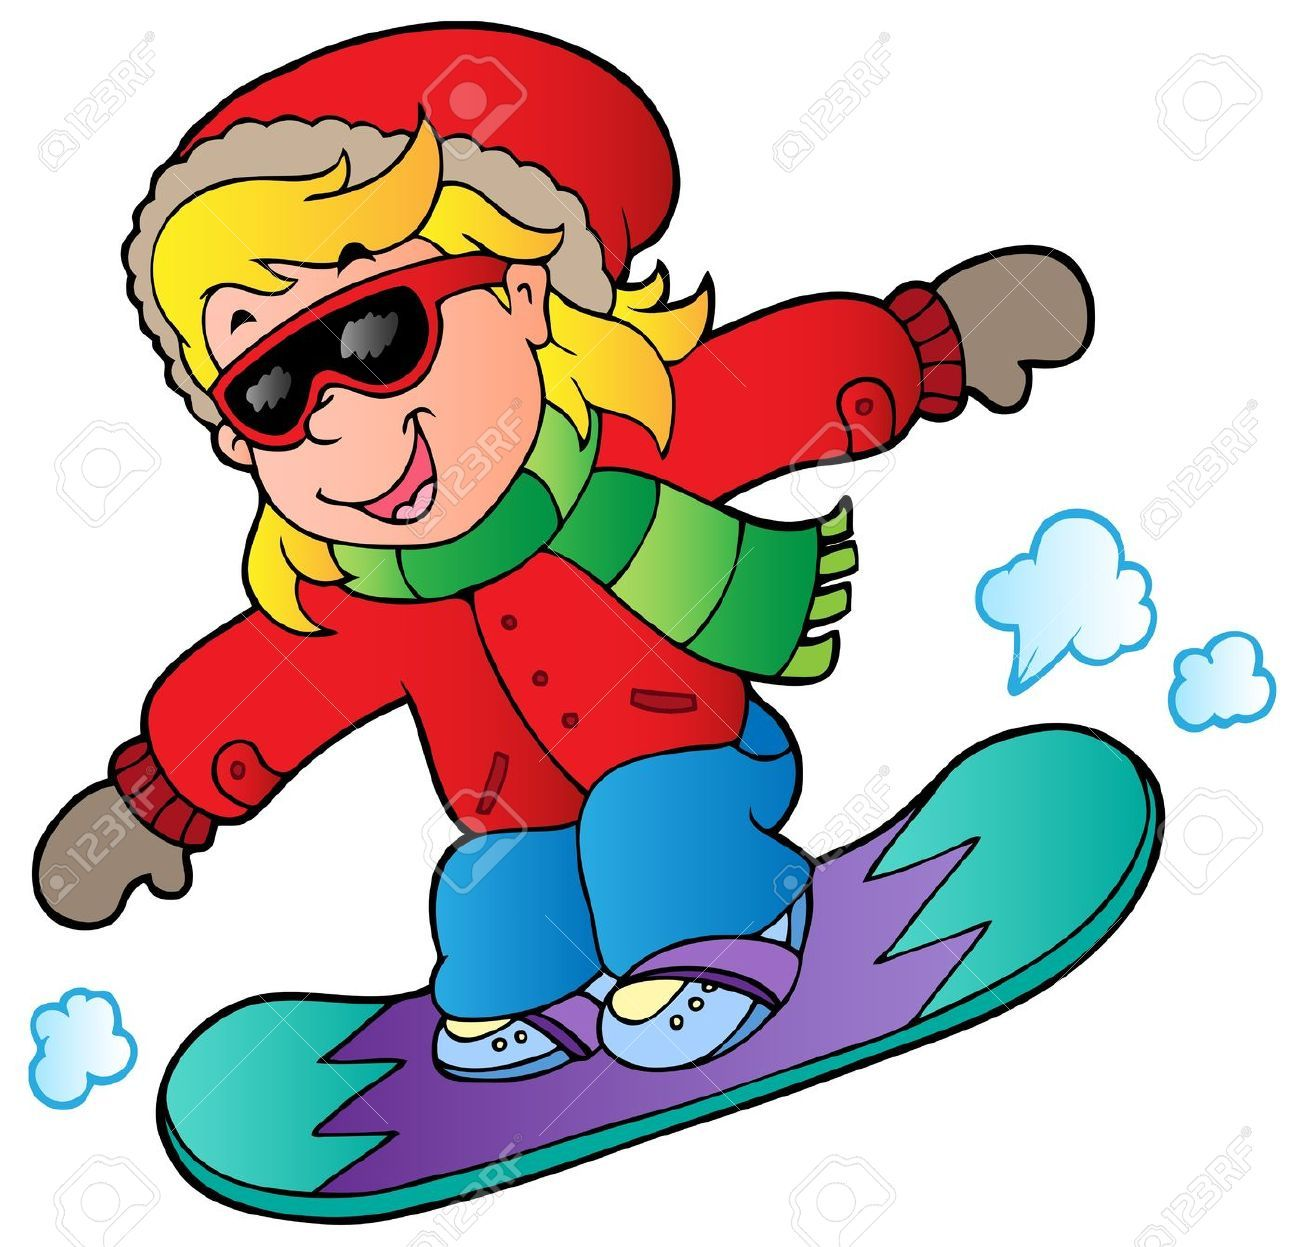 Winter clipart activity, Winter activity Transparent FREE.